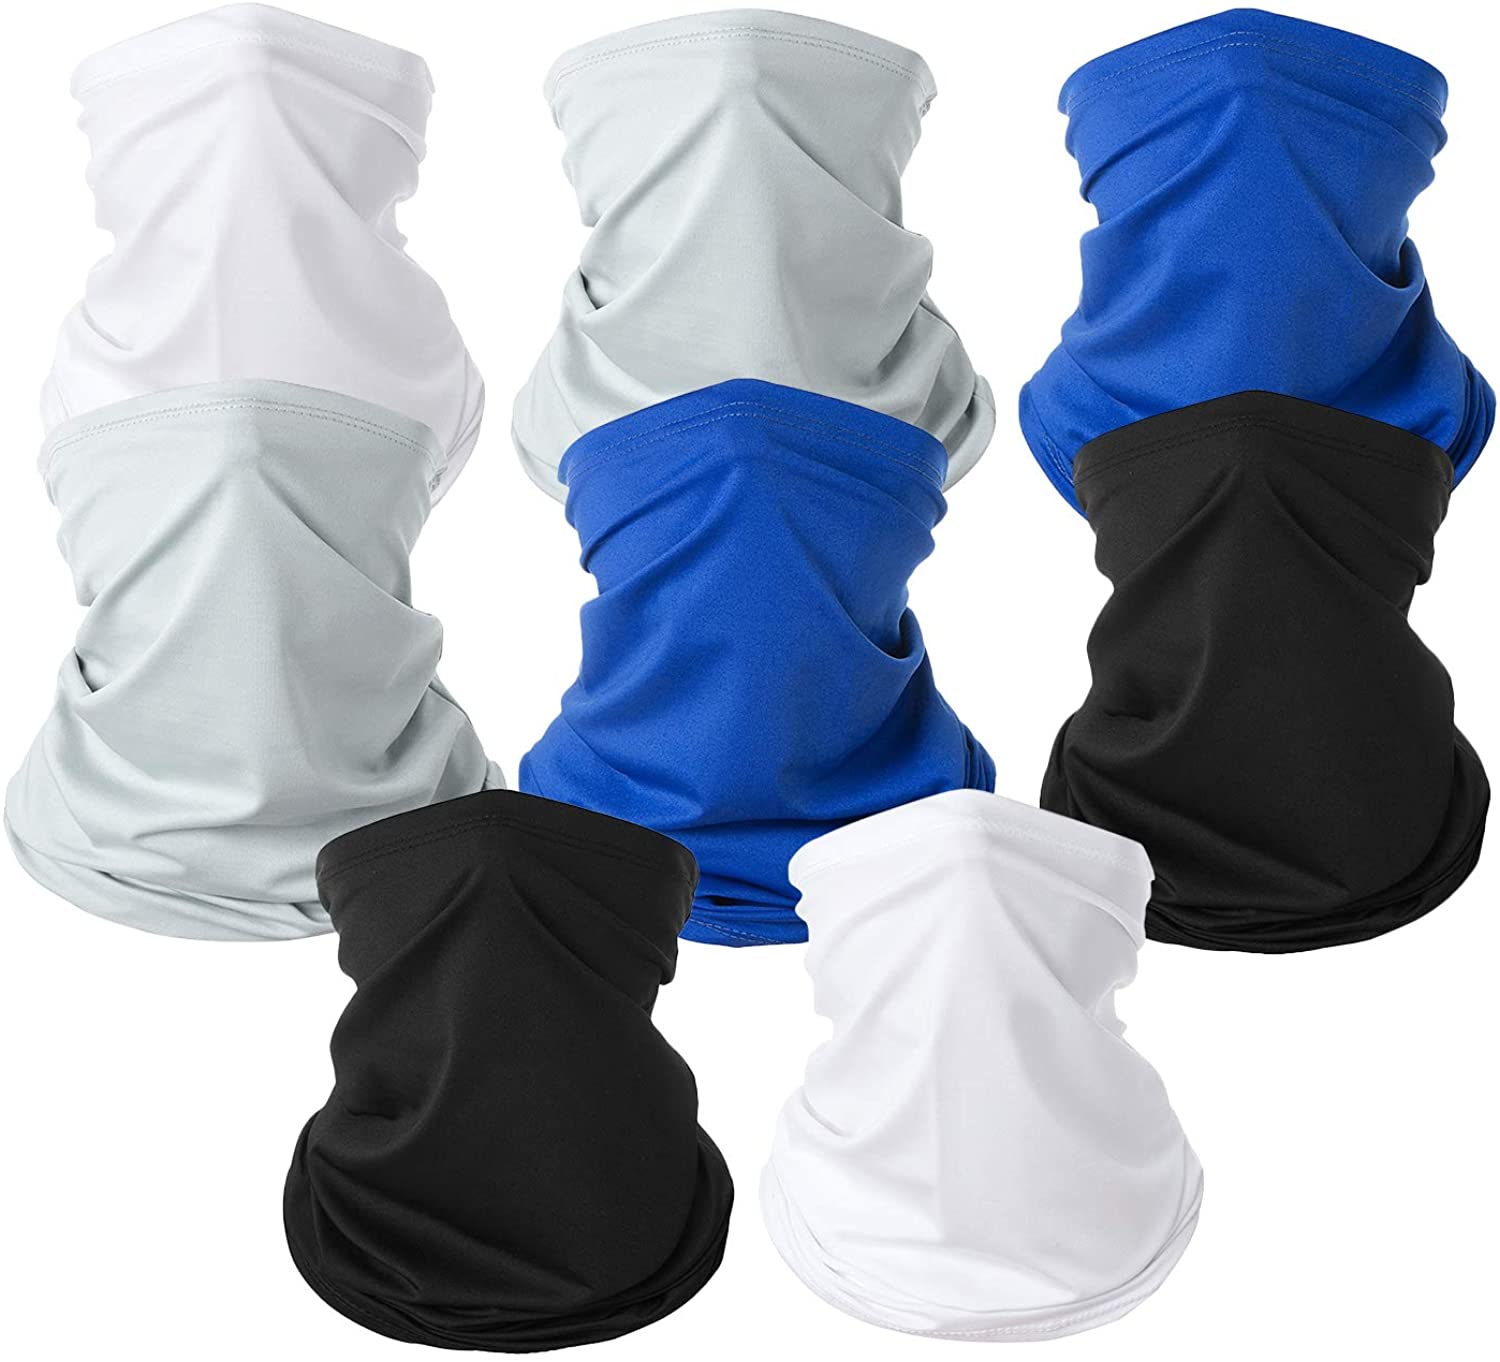 8 Pack Neck Gaiter Face Mask Scarf for Men Women Sun Protection Face Cover Balaclavas Bandana for Sun Hot Summer Cycling Hiking Fishing (Black Blue Grey White)